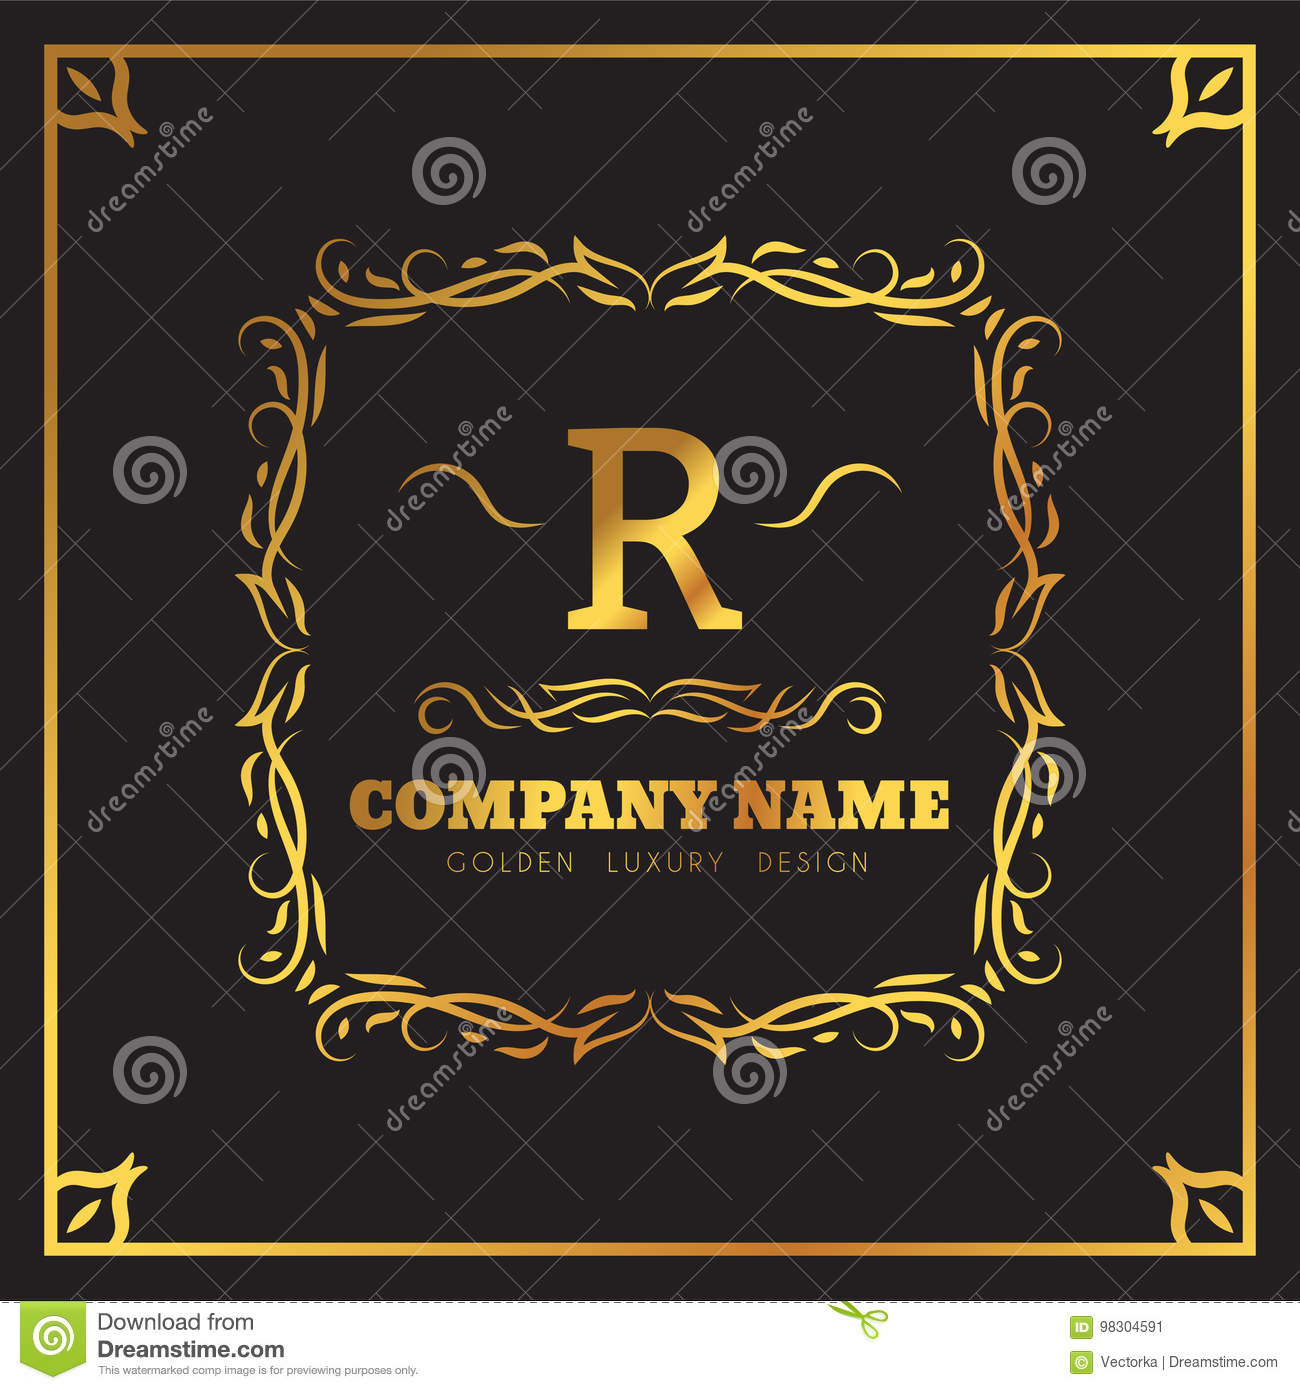 Golden Logo template Elegant flourishes calligraphic. Monogram R letter emblem. Vintage ornament lines. Luxury Business